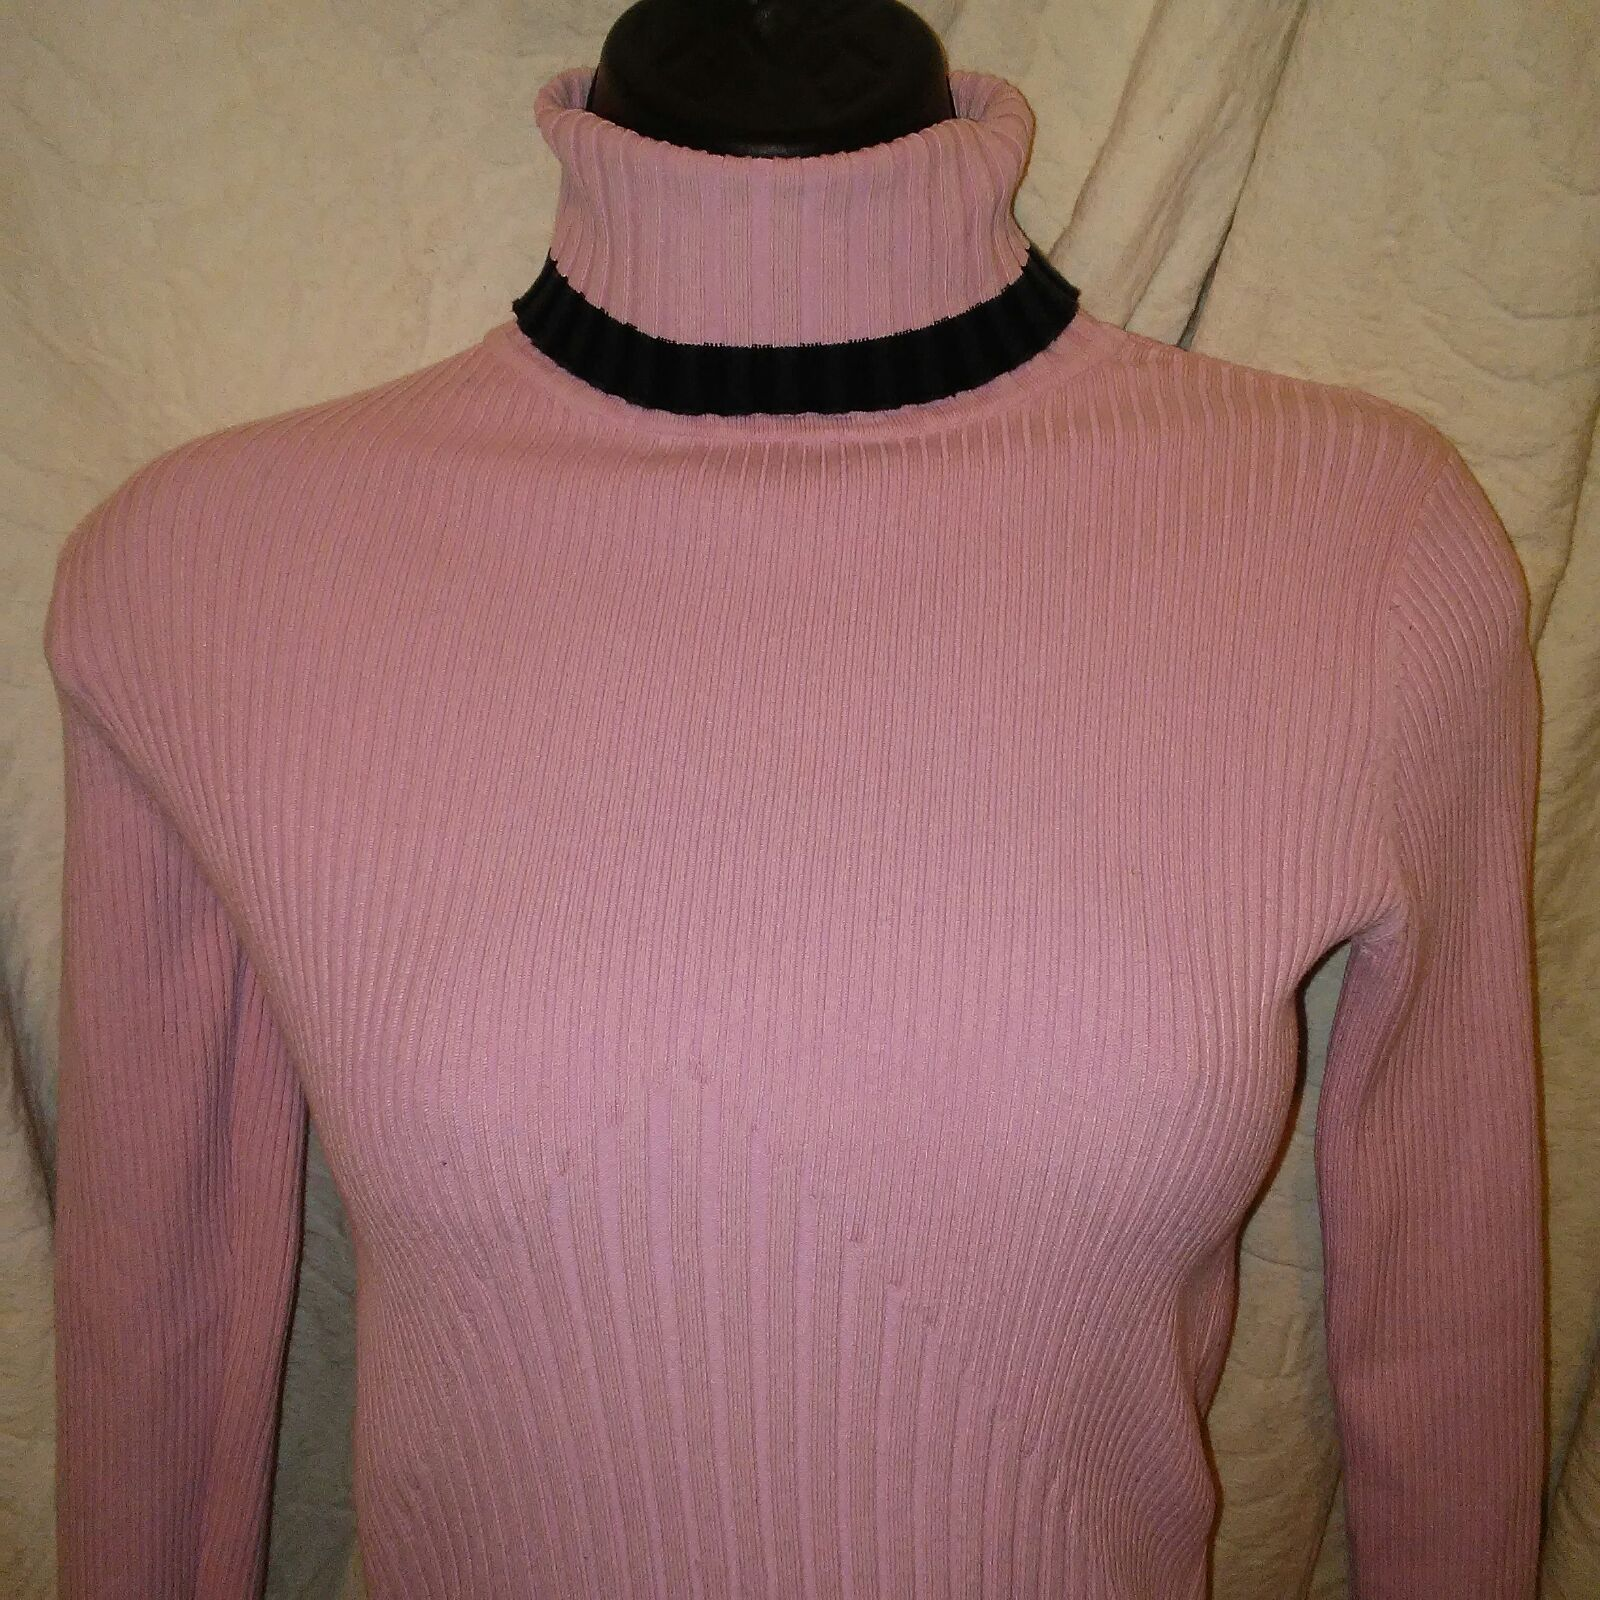 Cache Women's Pink Turtleneck Sweater Sm - Mercari: BUY & SELL ...